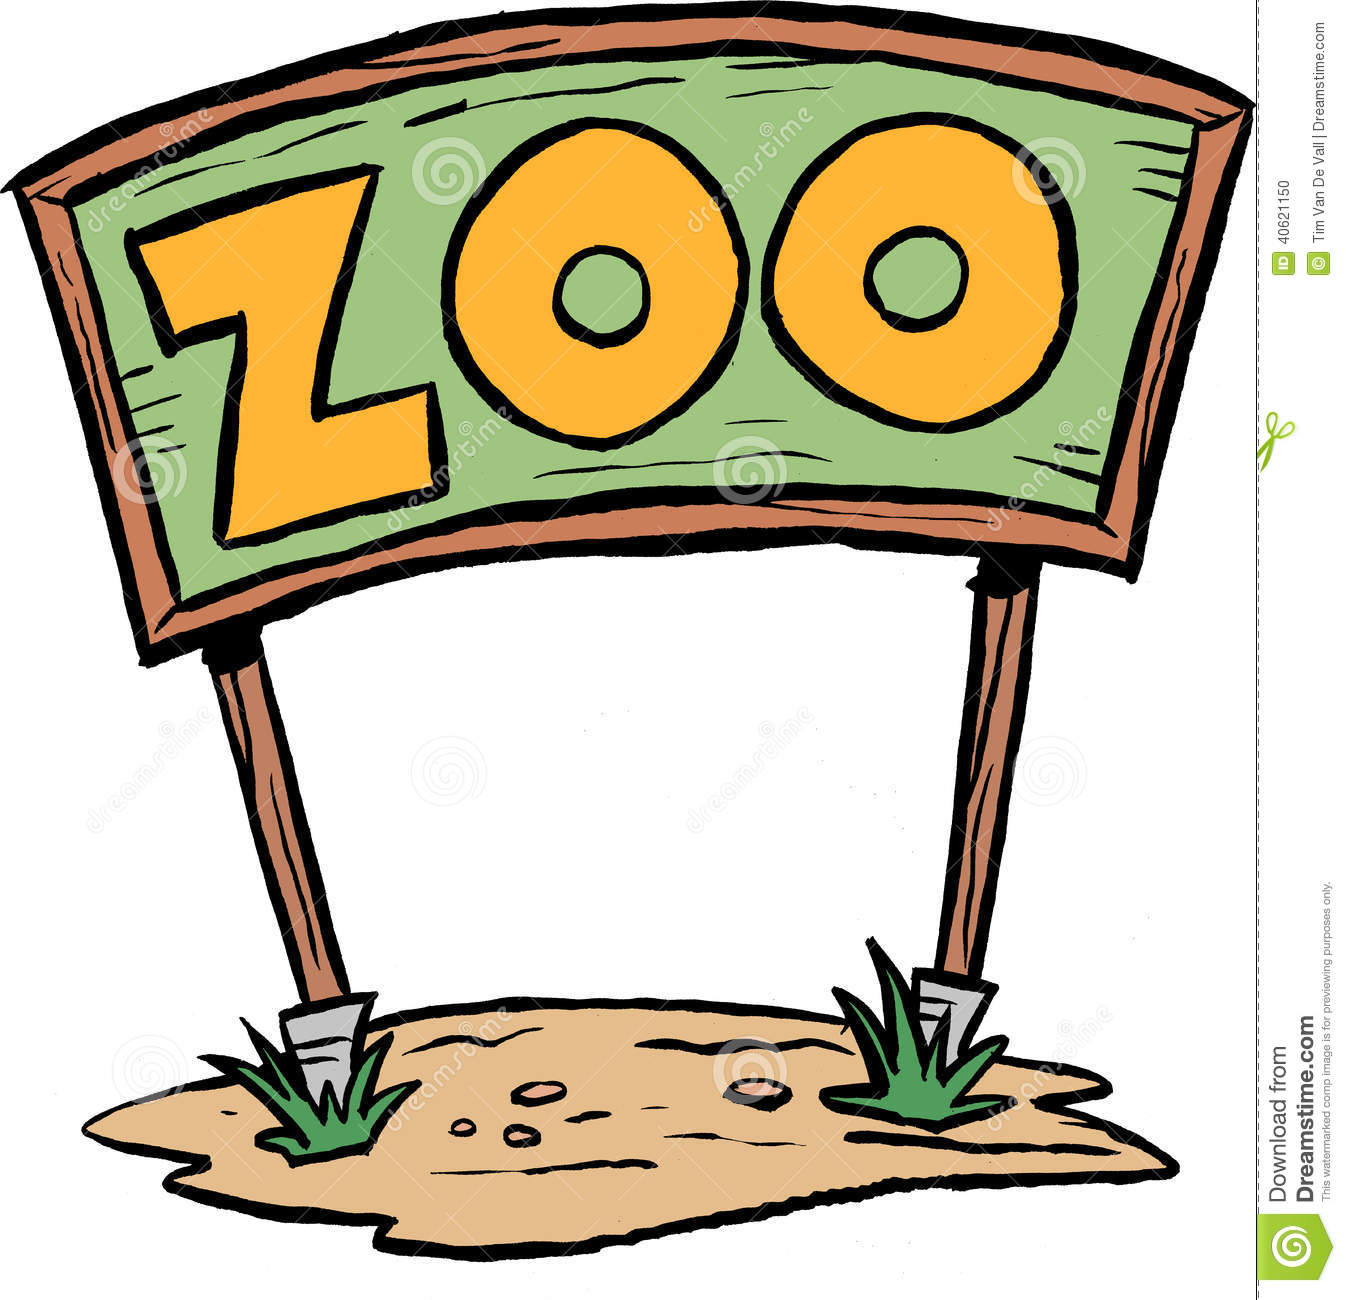 hight resolution of zoo sign